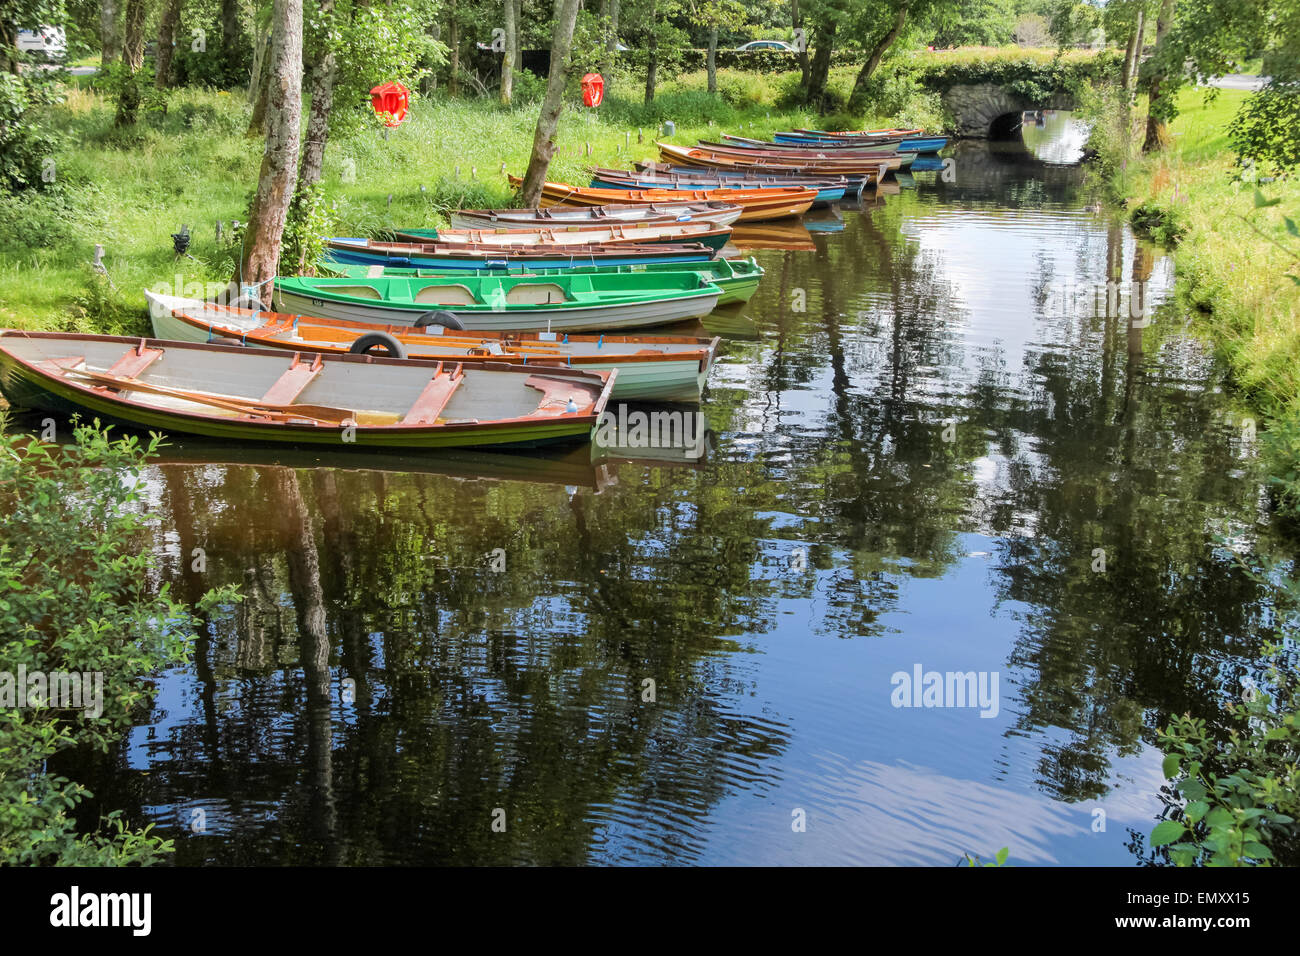 Rowing boats on a peaceful river in Killarney, County Kerry, Ireland - Stock Image